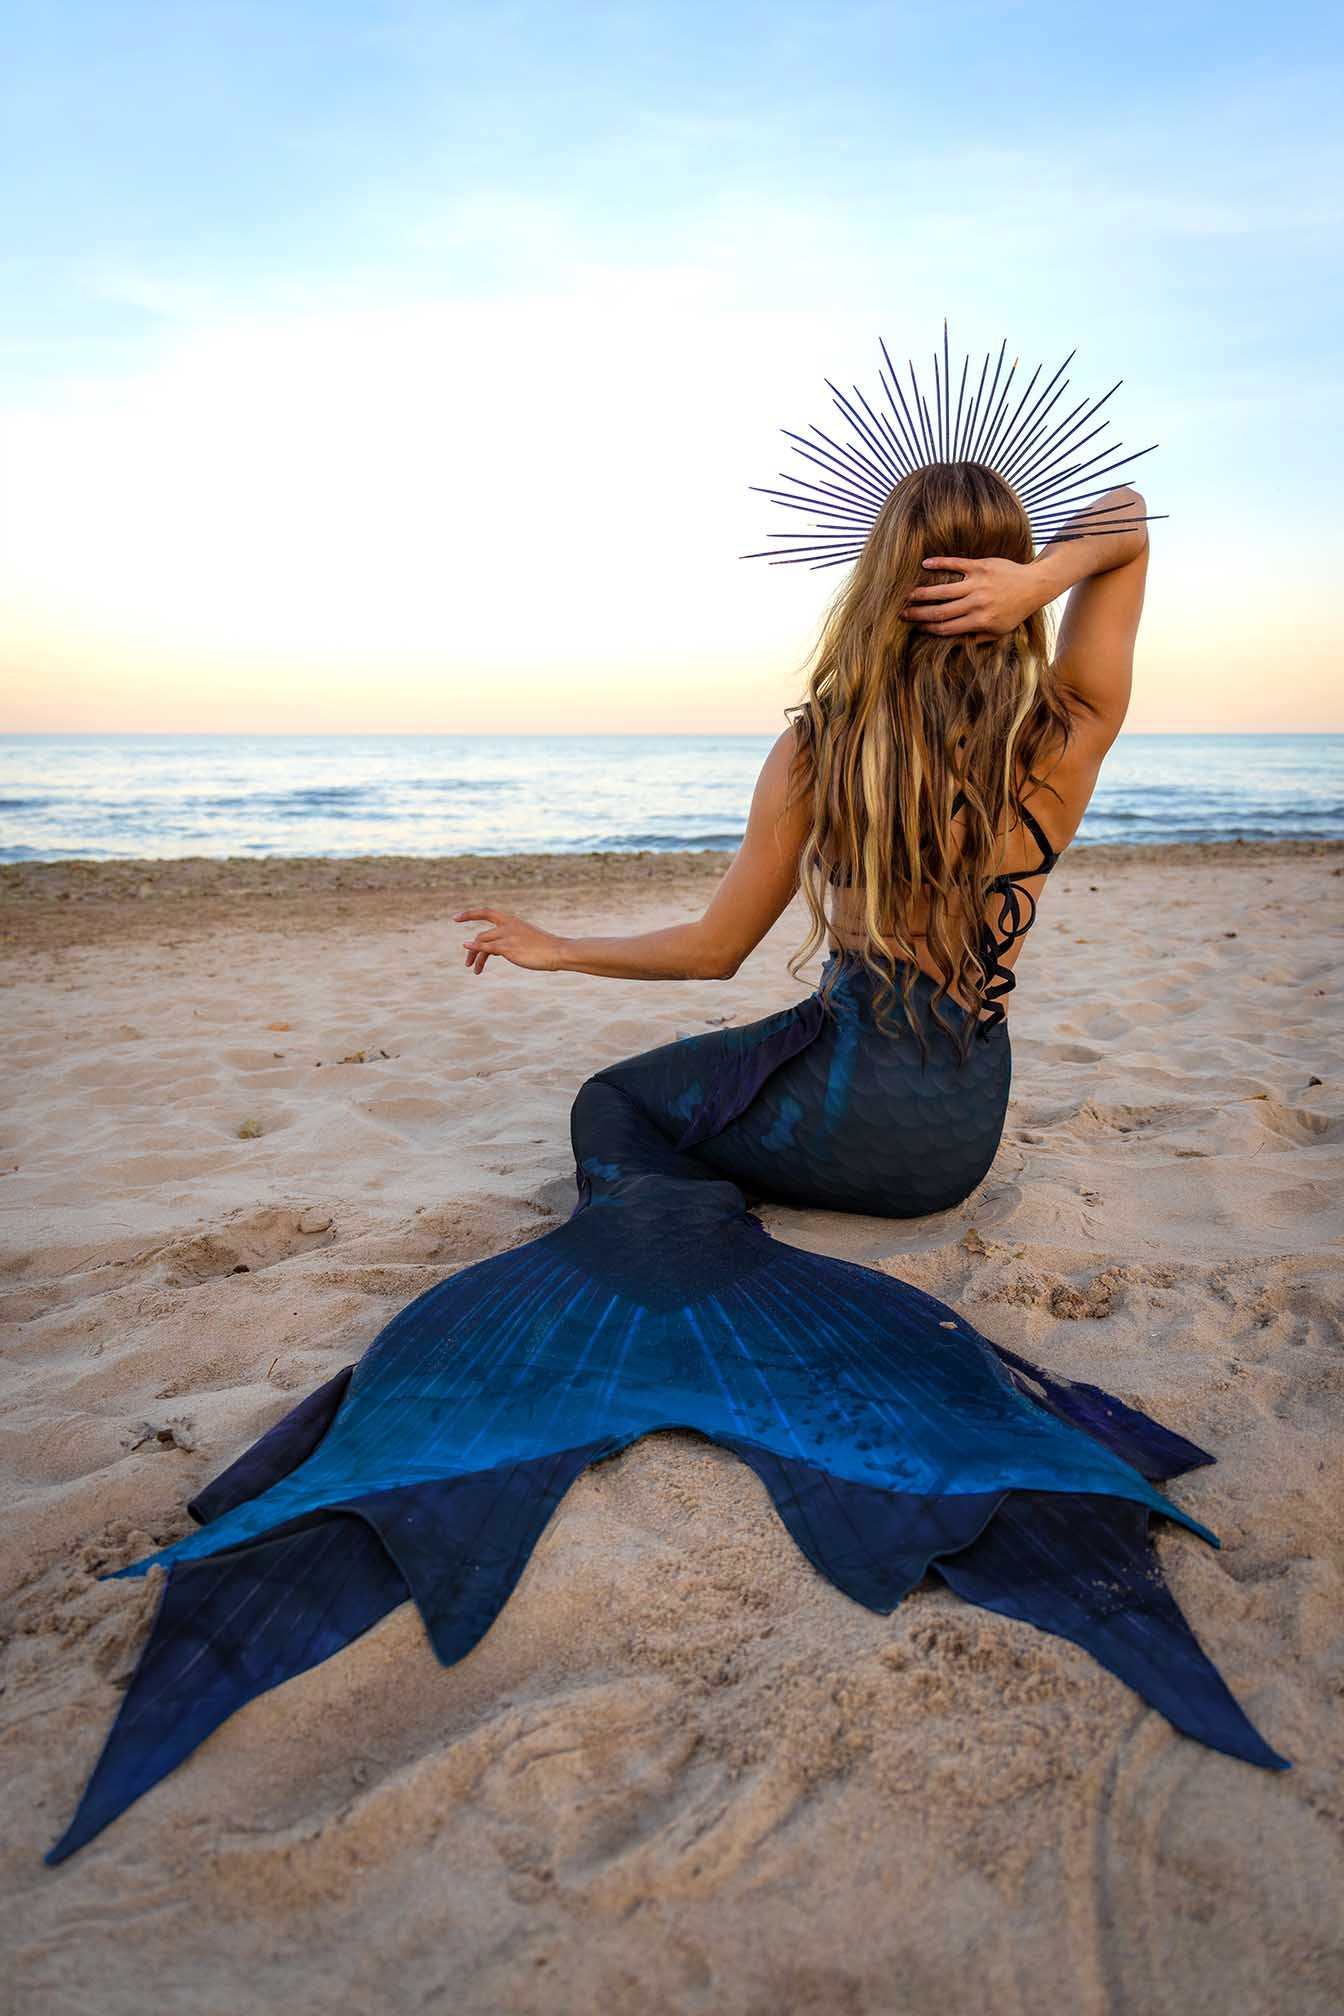 Black Magic Mermaid Tail - DiveTail by Cape Cali